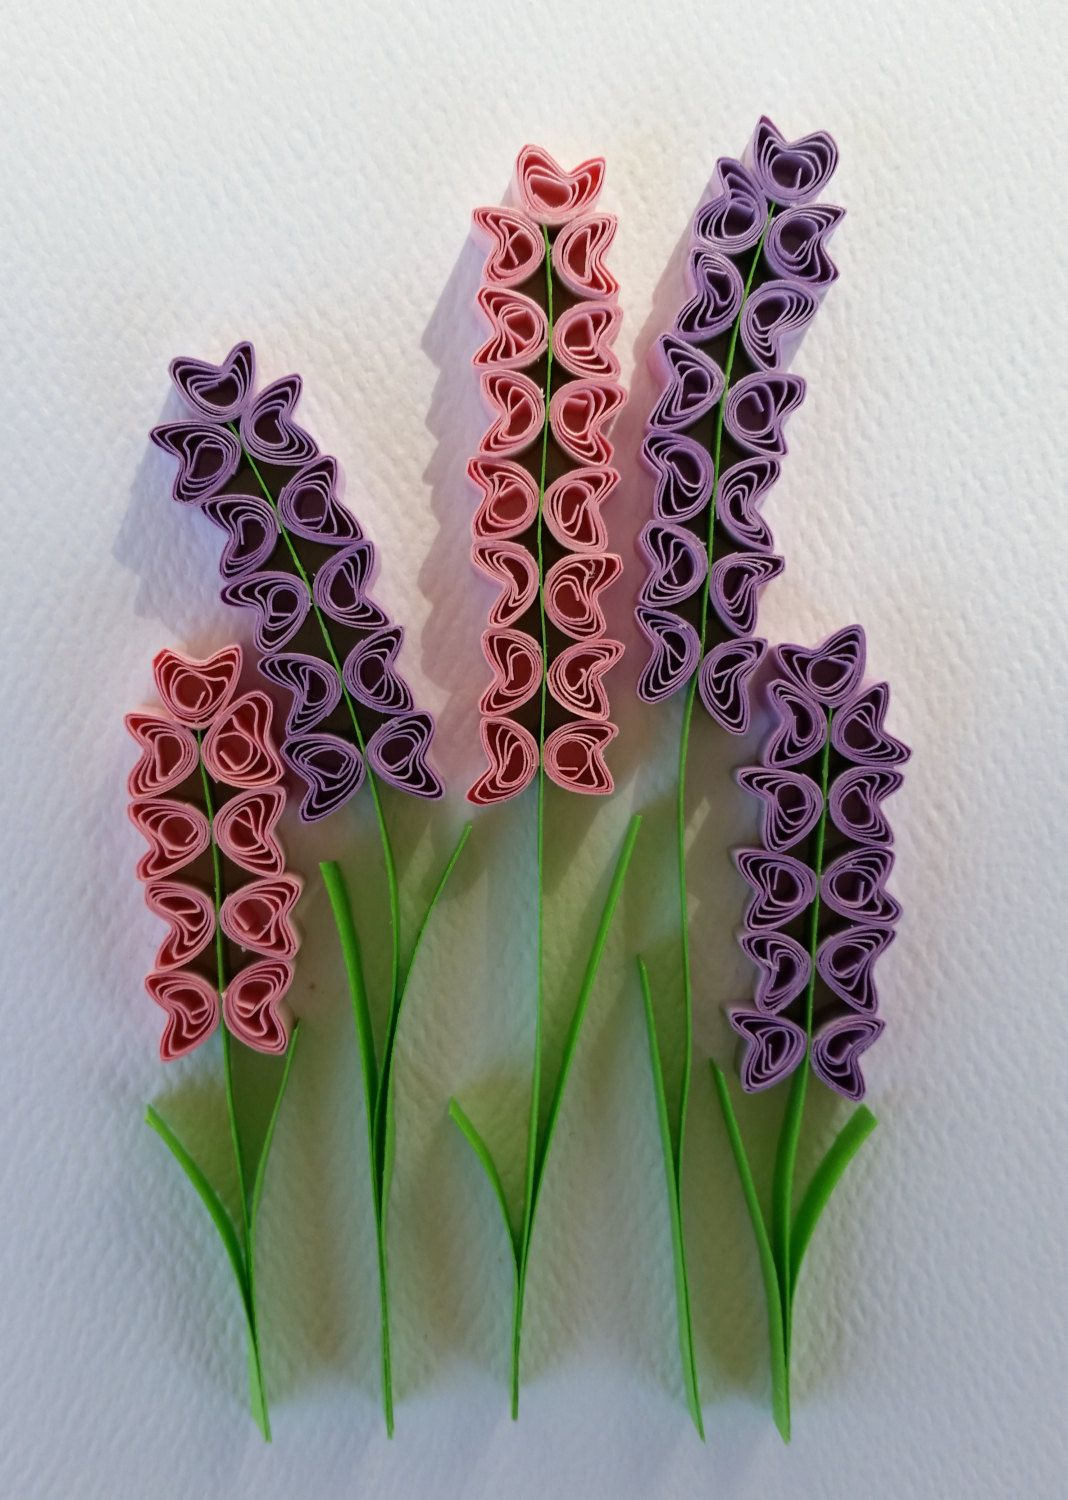 Paper Quilled Hyacinth Flowers Card 5x7 By Iheartquilling On Etsy